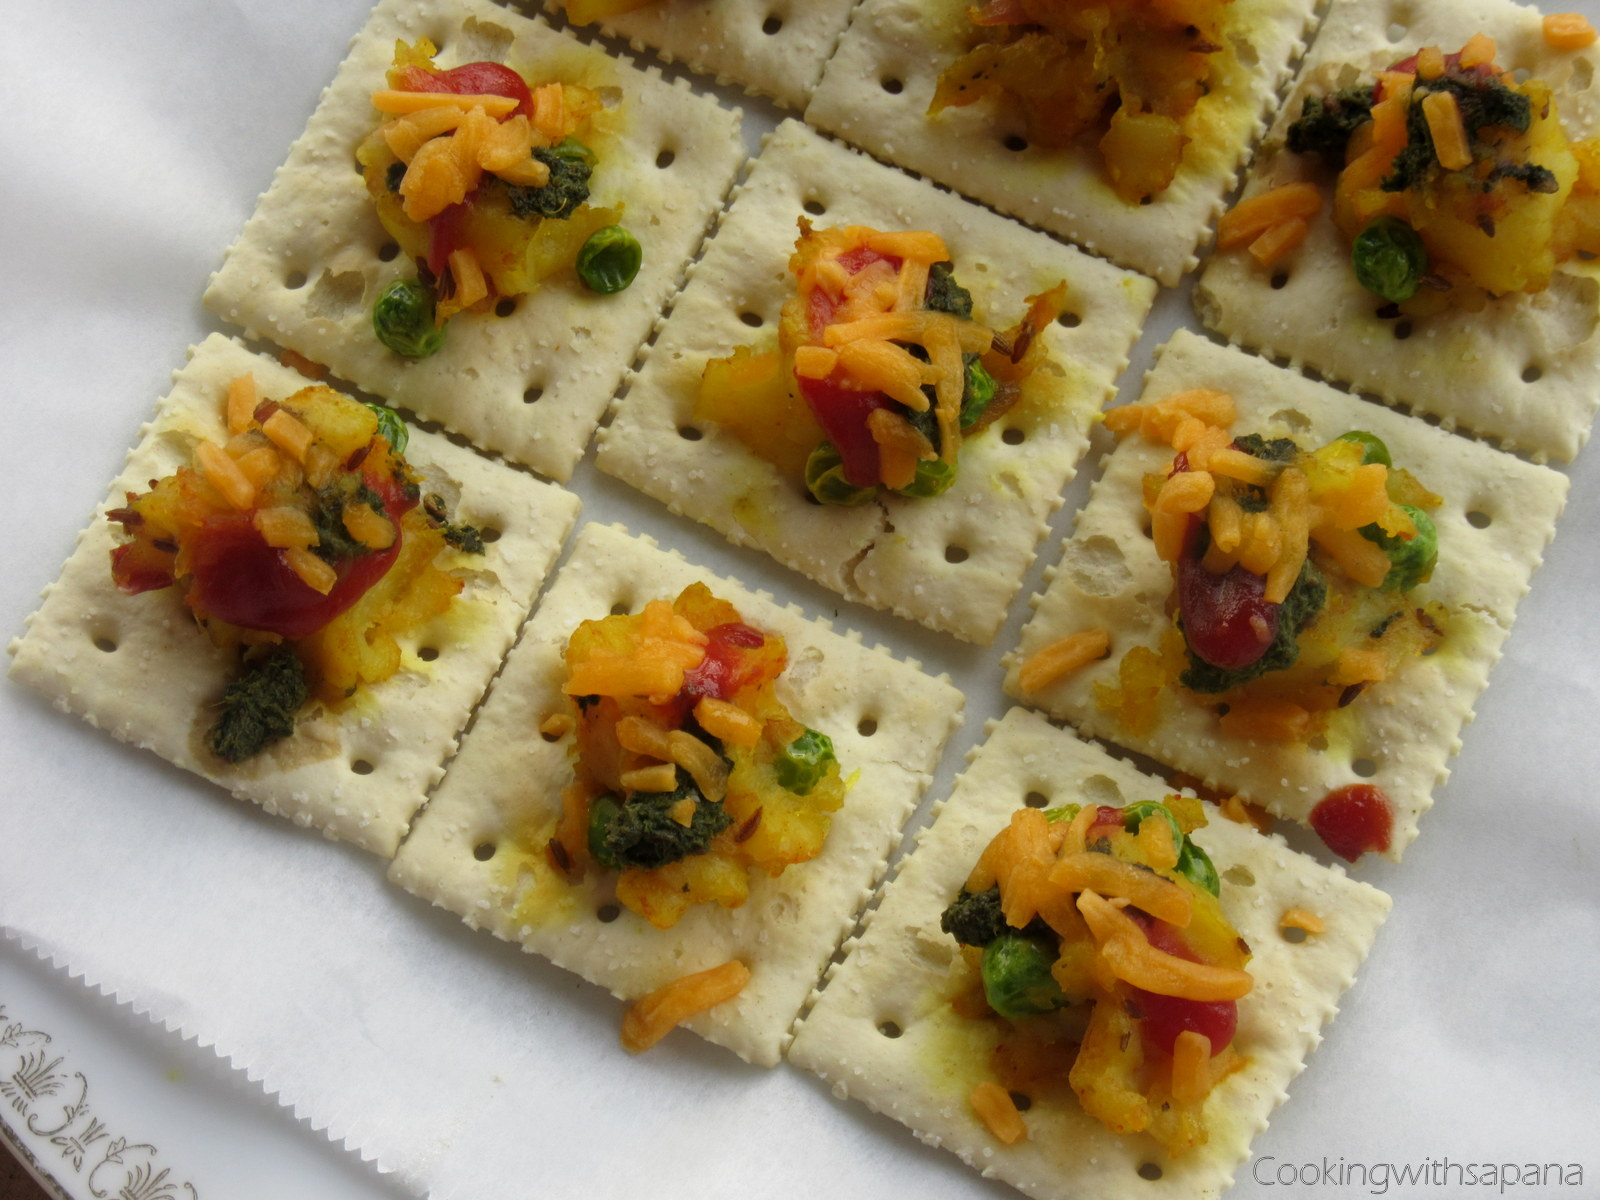 Saltine crackers canapes with potato peas topping for Canape fillings indian